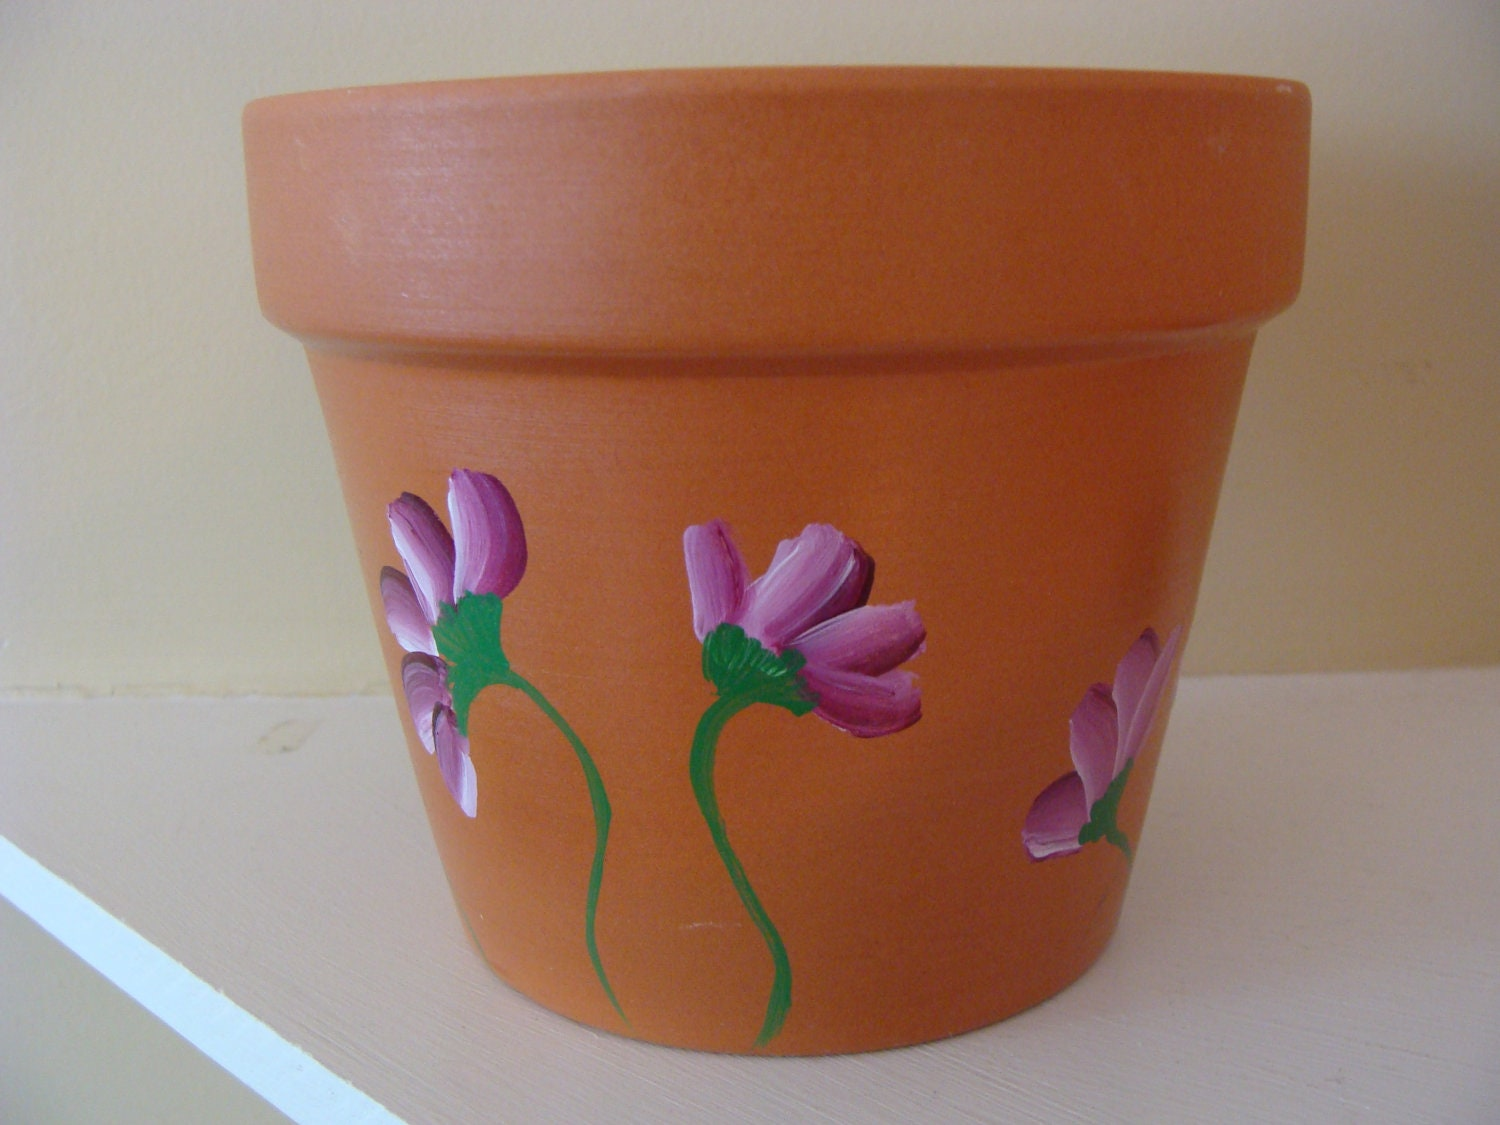 Pot designs ceramic pot designs rseapt org pot painting for Clay mural designs